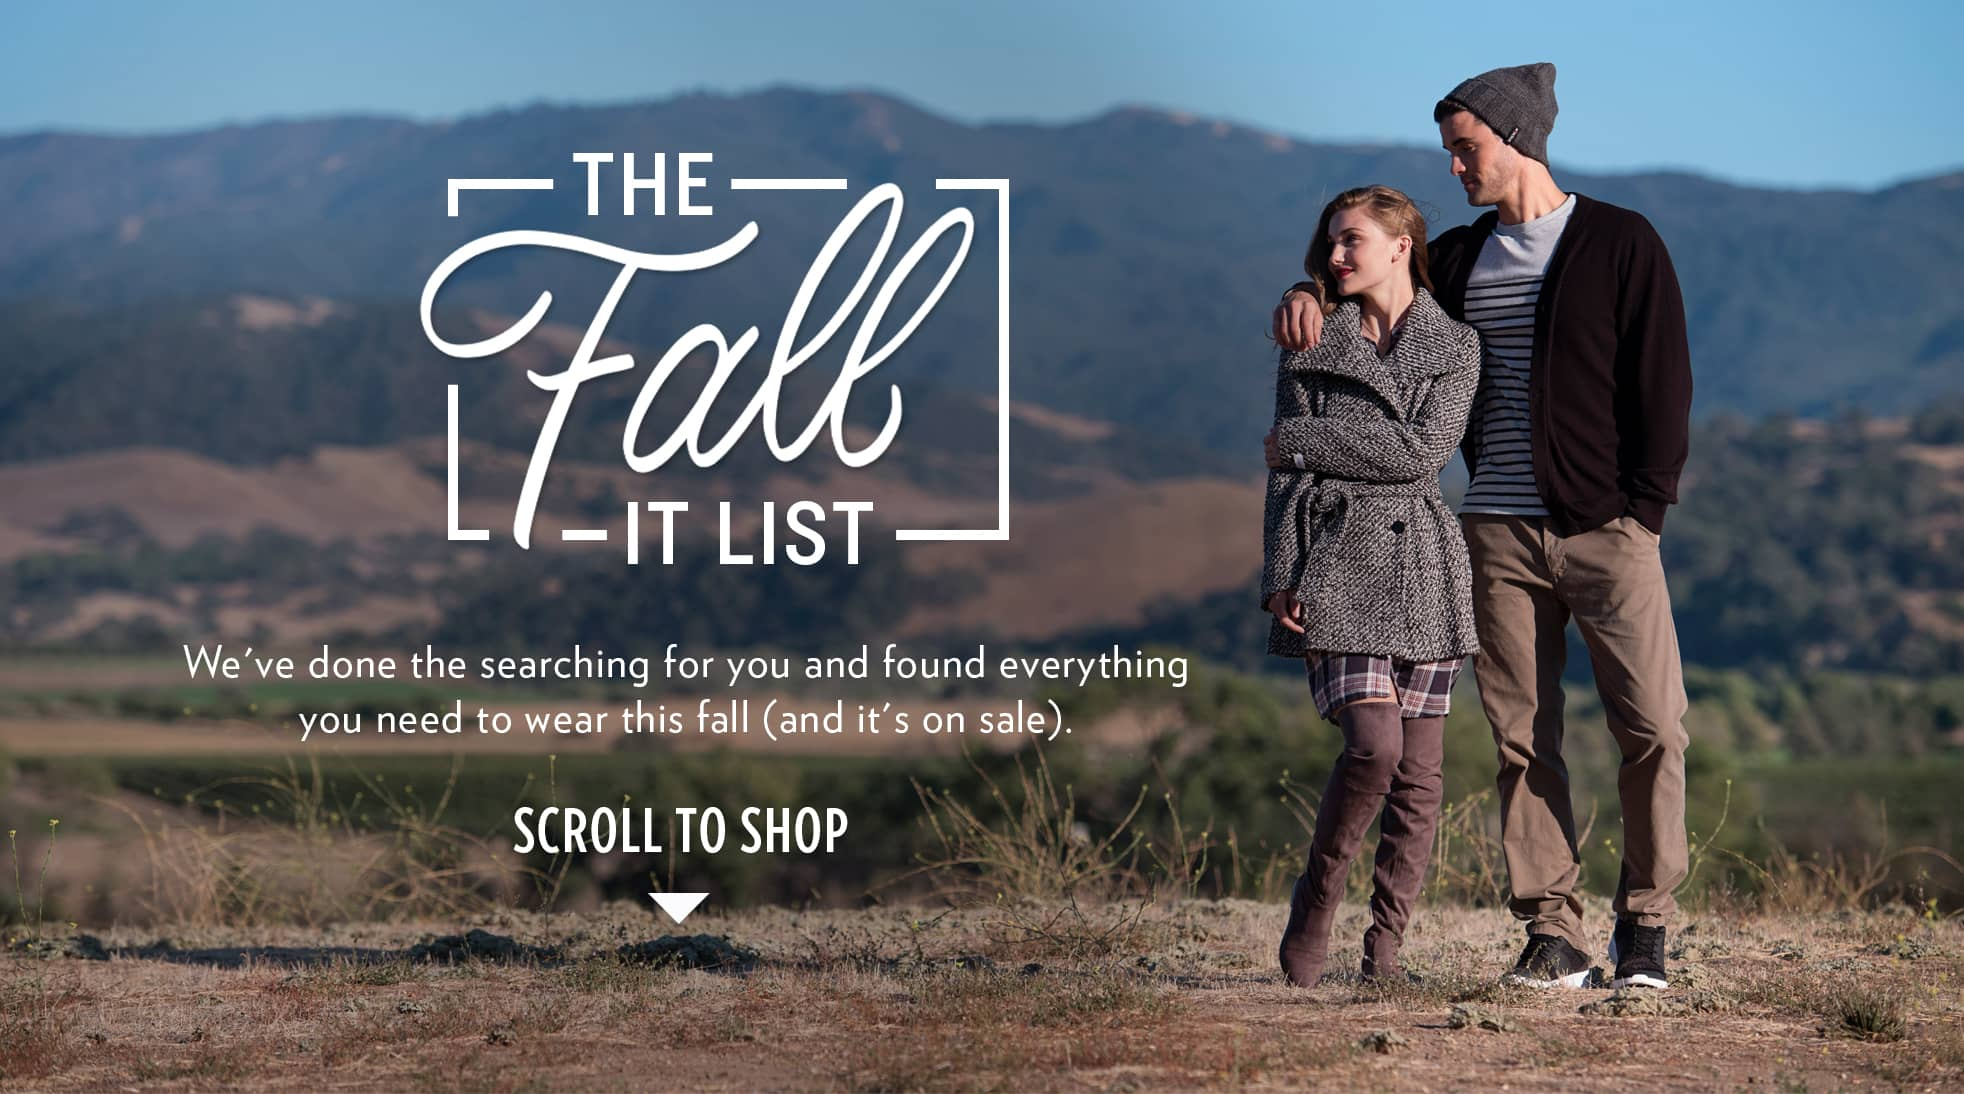 THE FALL IT LIST